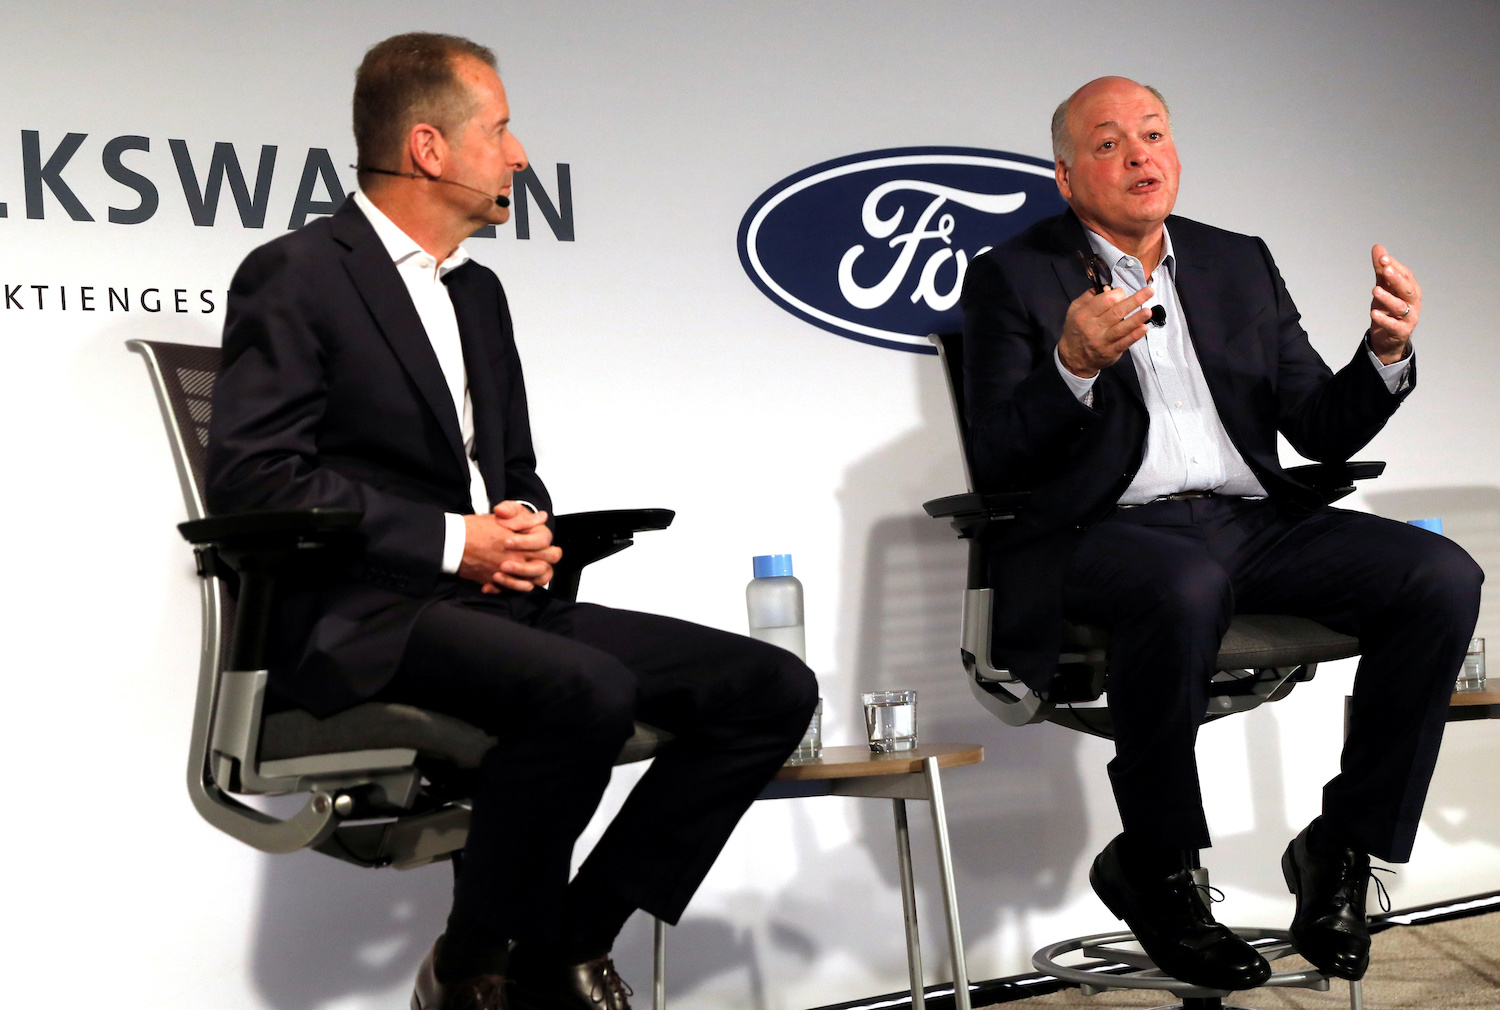 Ford president and CEO Jim Hackett speaks as Volkswagen CEO Herbert Diess looks on during a news conference in New York City about the two companies' joint EV and self-driven vehicle plans. (Reuters Photo)